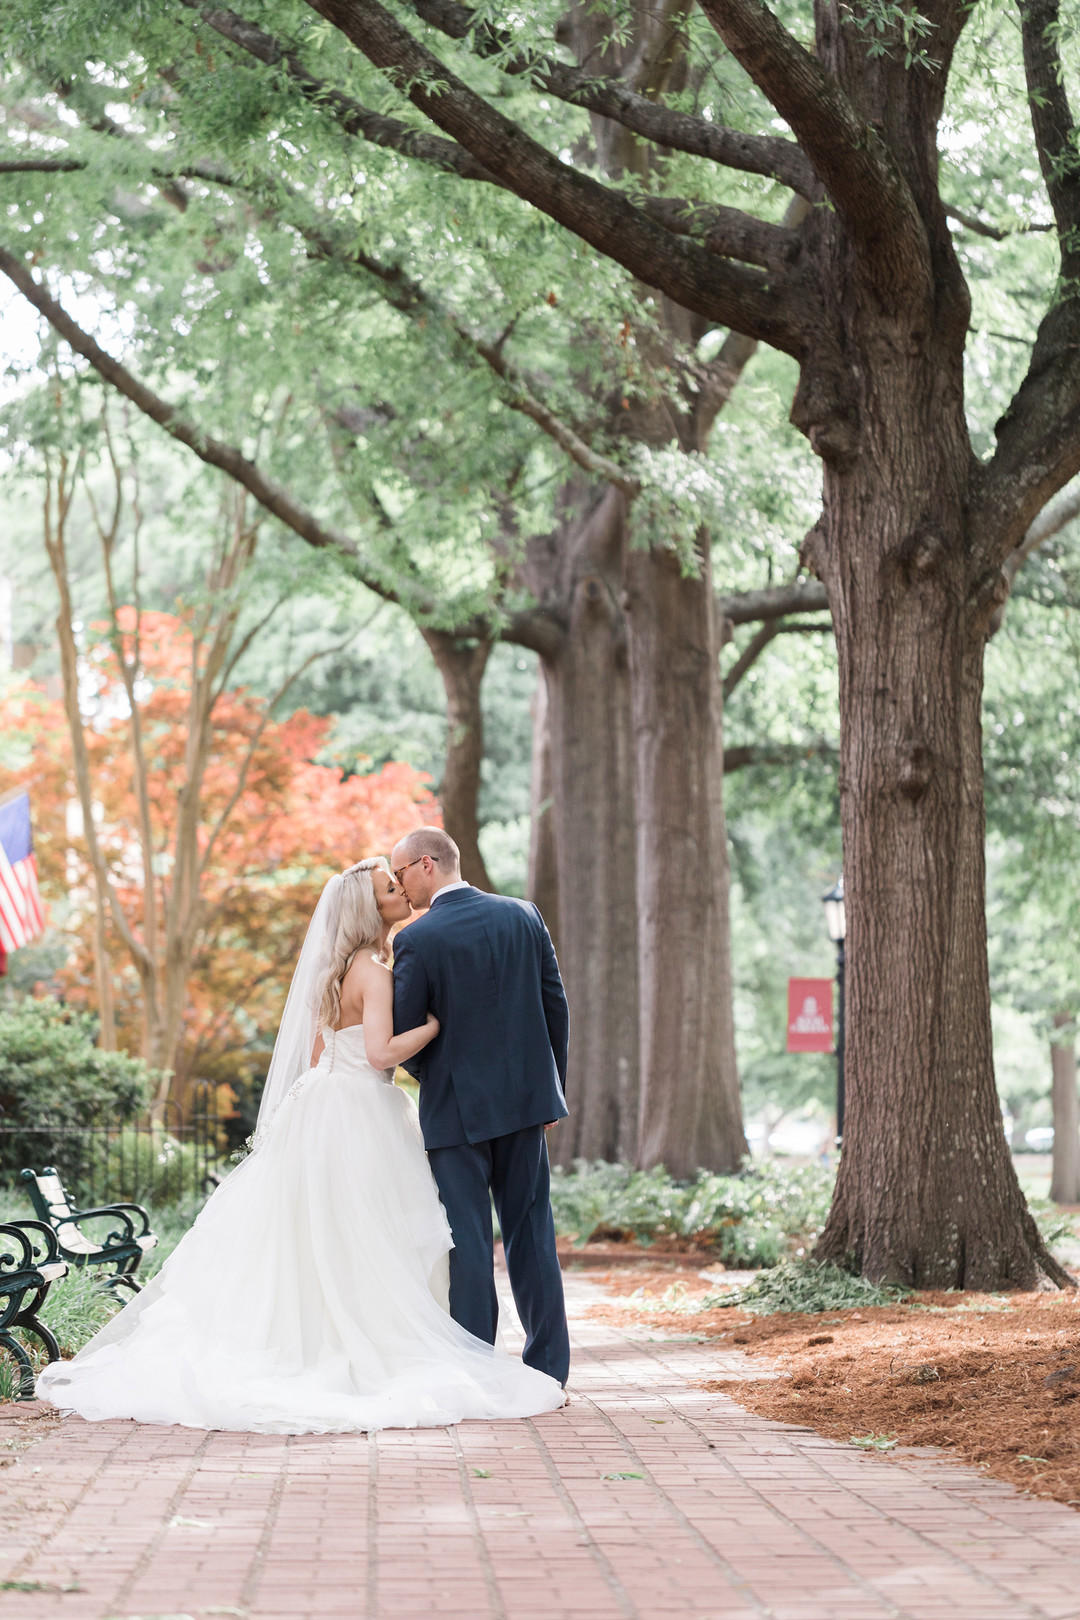 Gable + Jordan: Rutledge Chapel Wedding at the University of South Carolina | Palmetto State Weddings